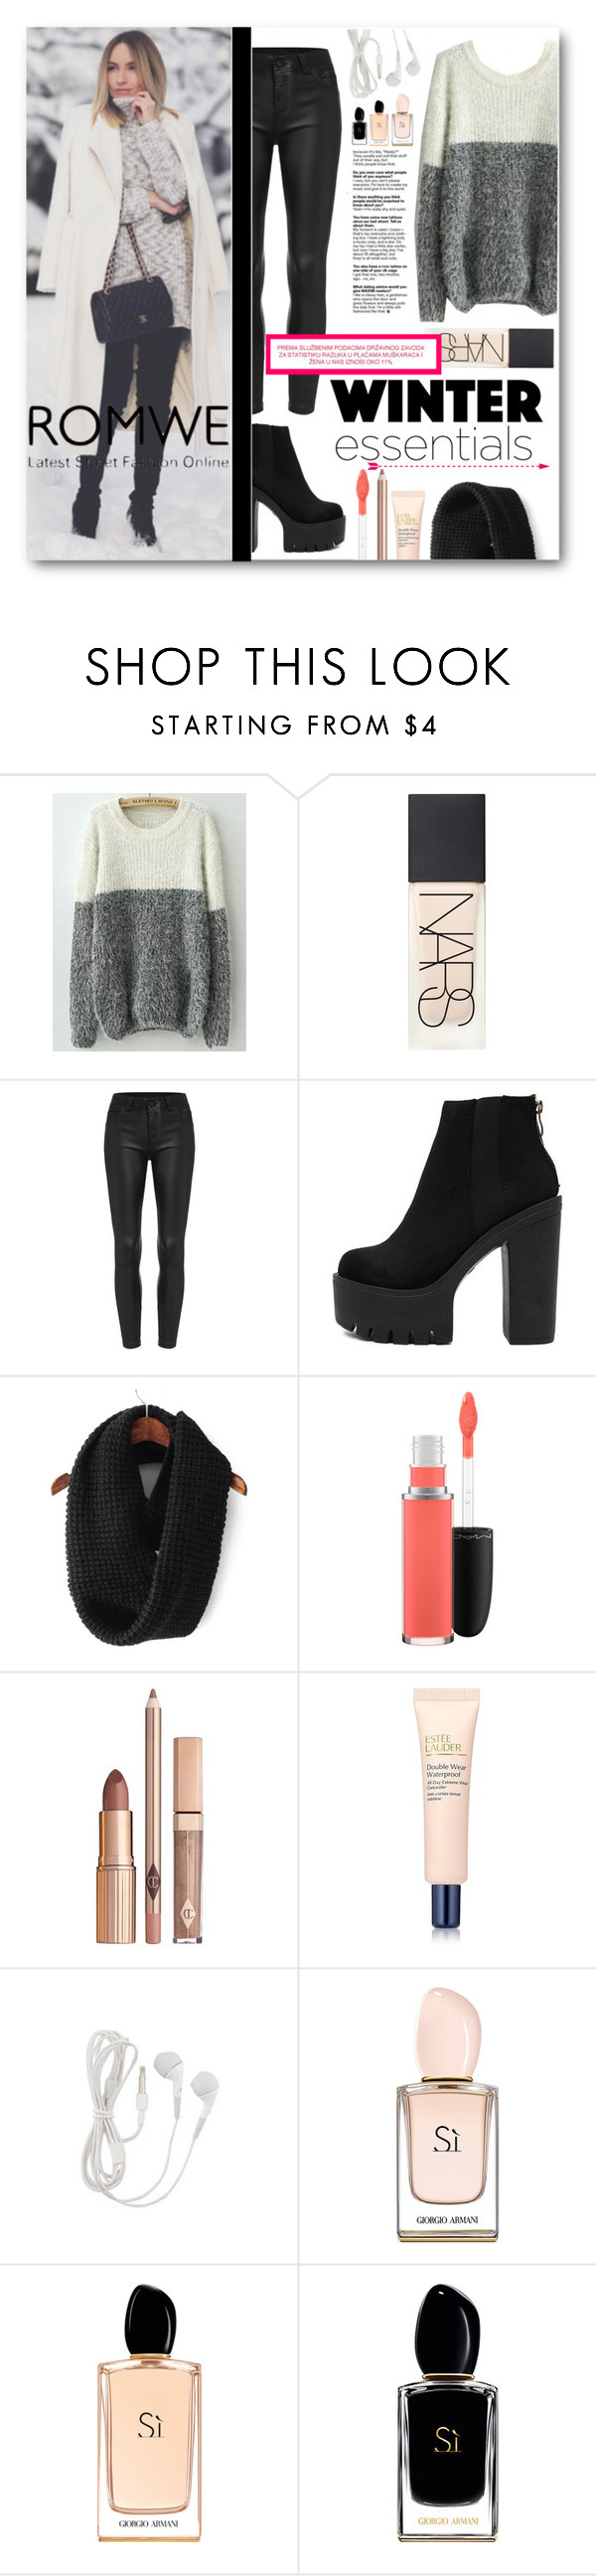 """""""Romwe"""" by tasnime-ben ❤ liked on Polyvore featuring NARS Cosmetics, MAC Cosmetics, Estée Lauder, Giorgio Armani and romwe"""